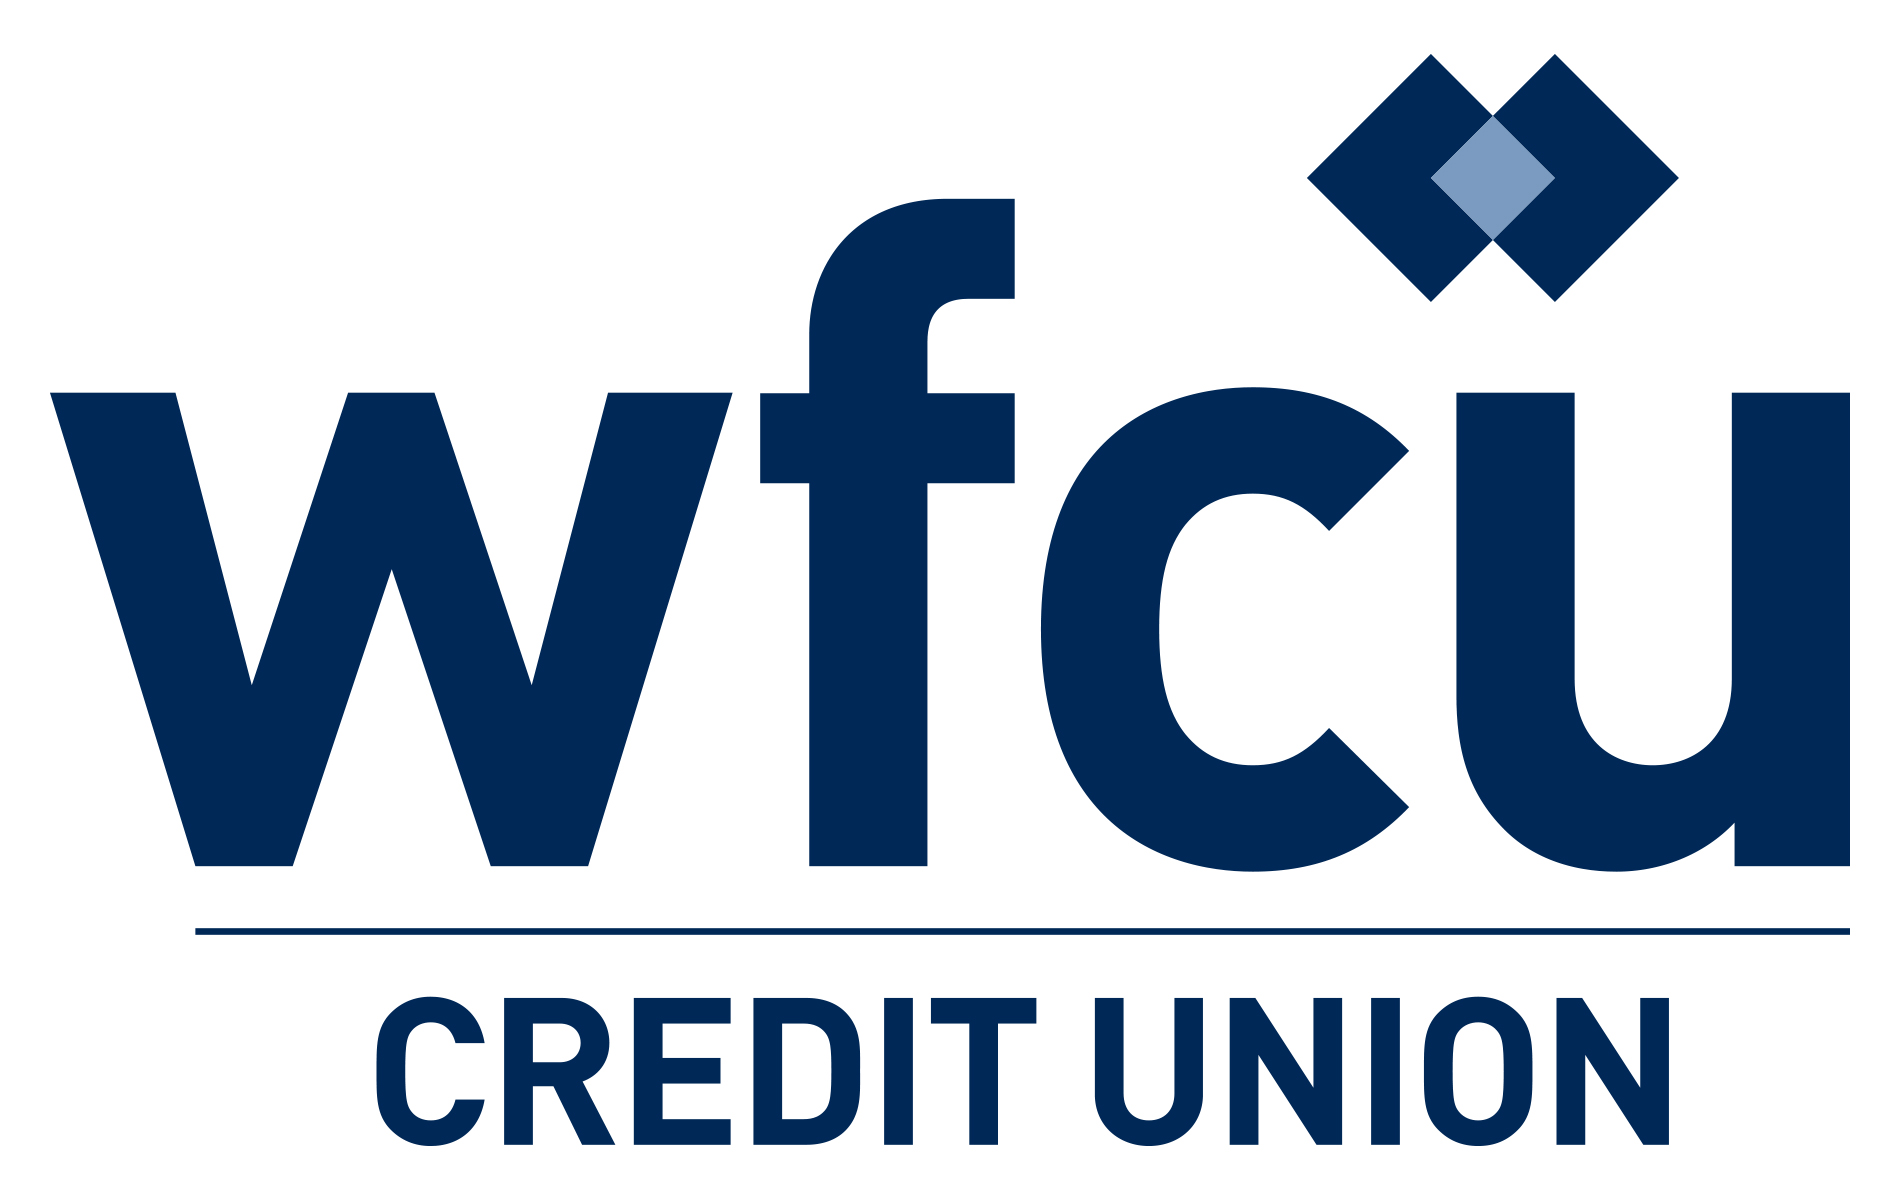 Letters WFCU